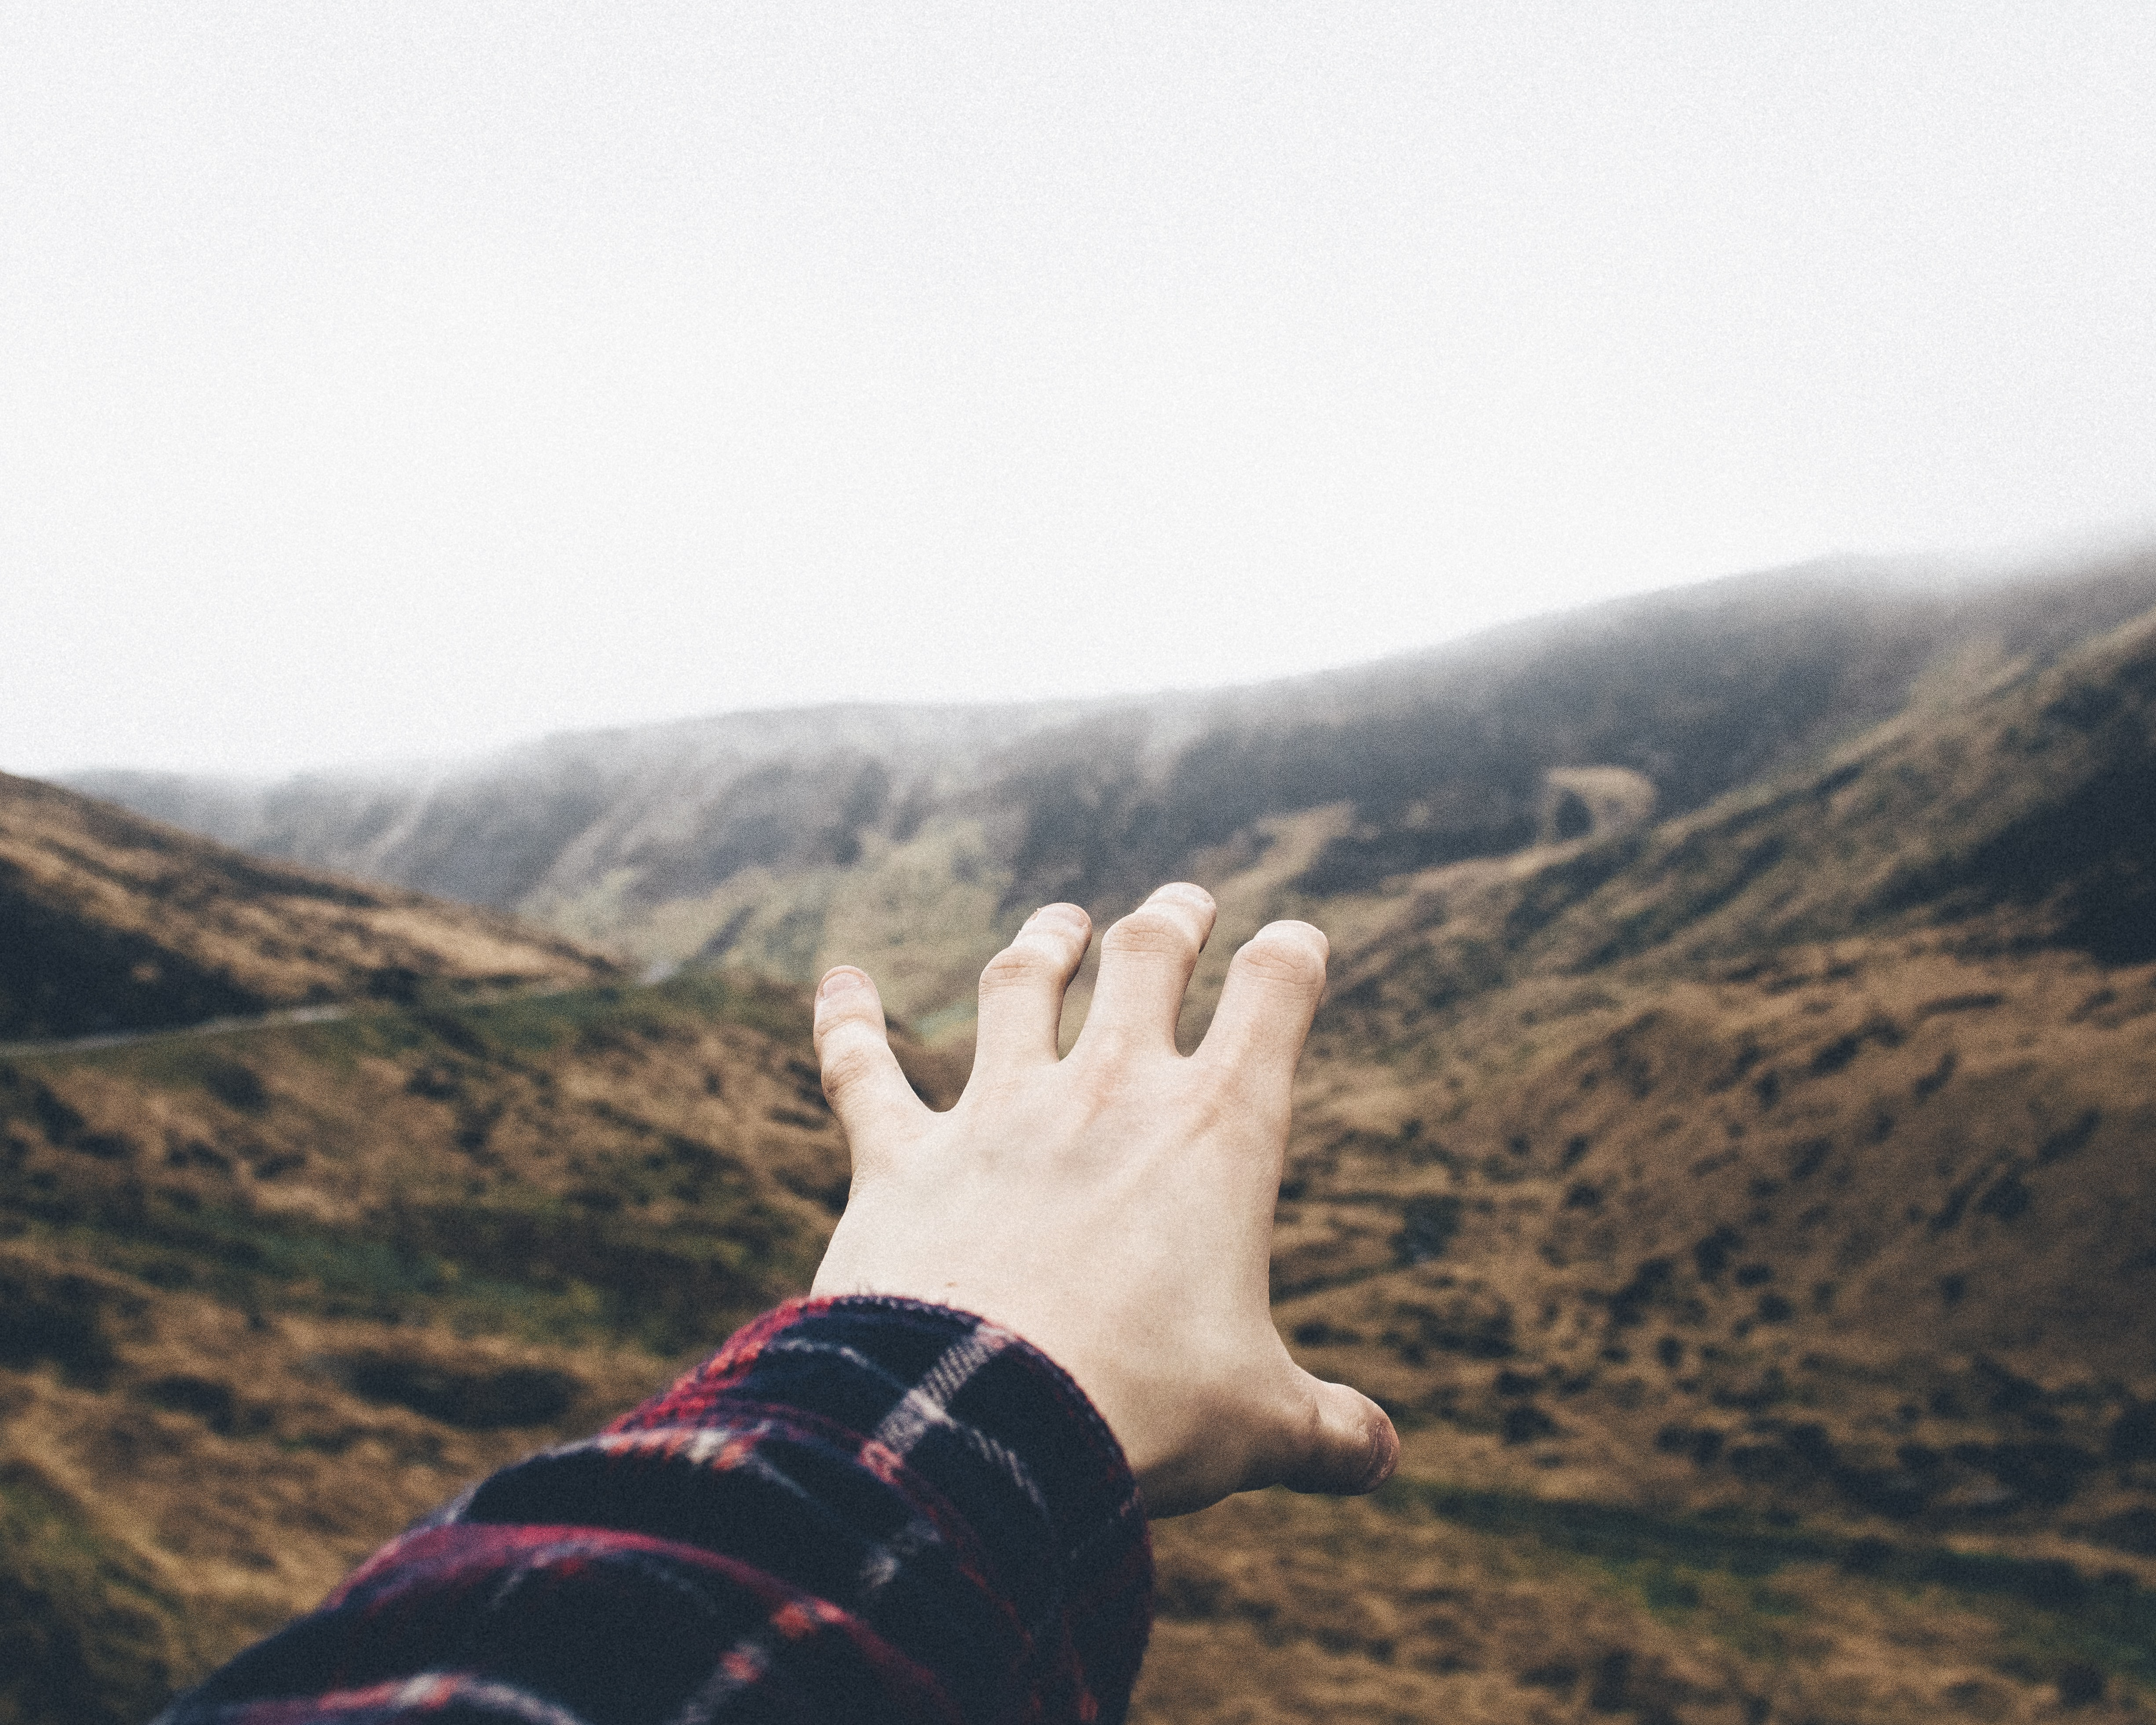 point of view photography of person raising hand towards mountains